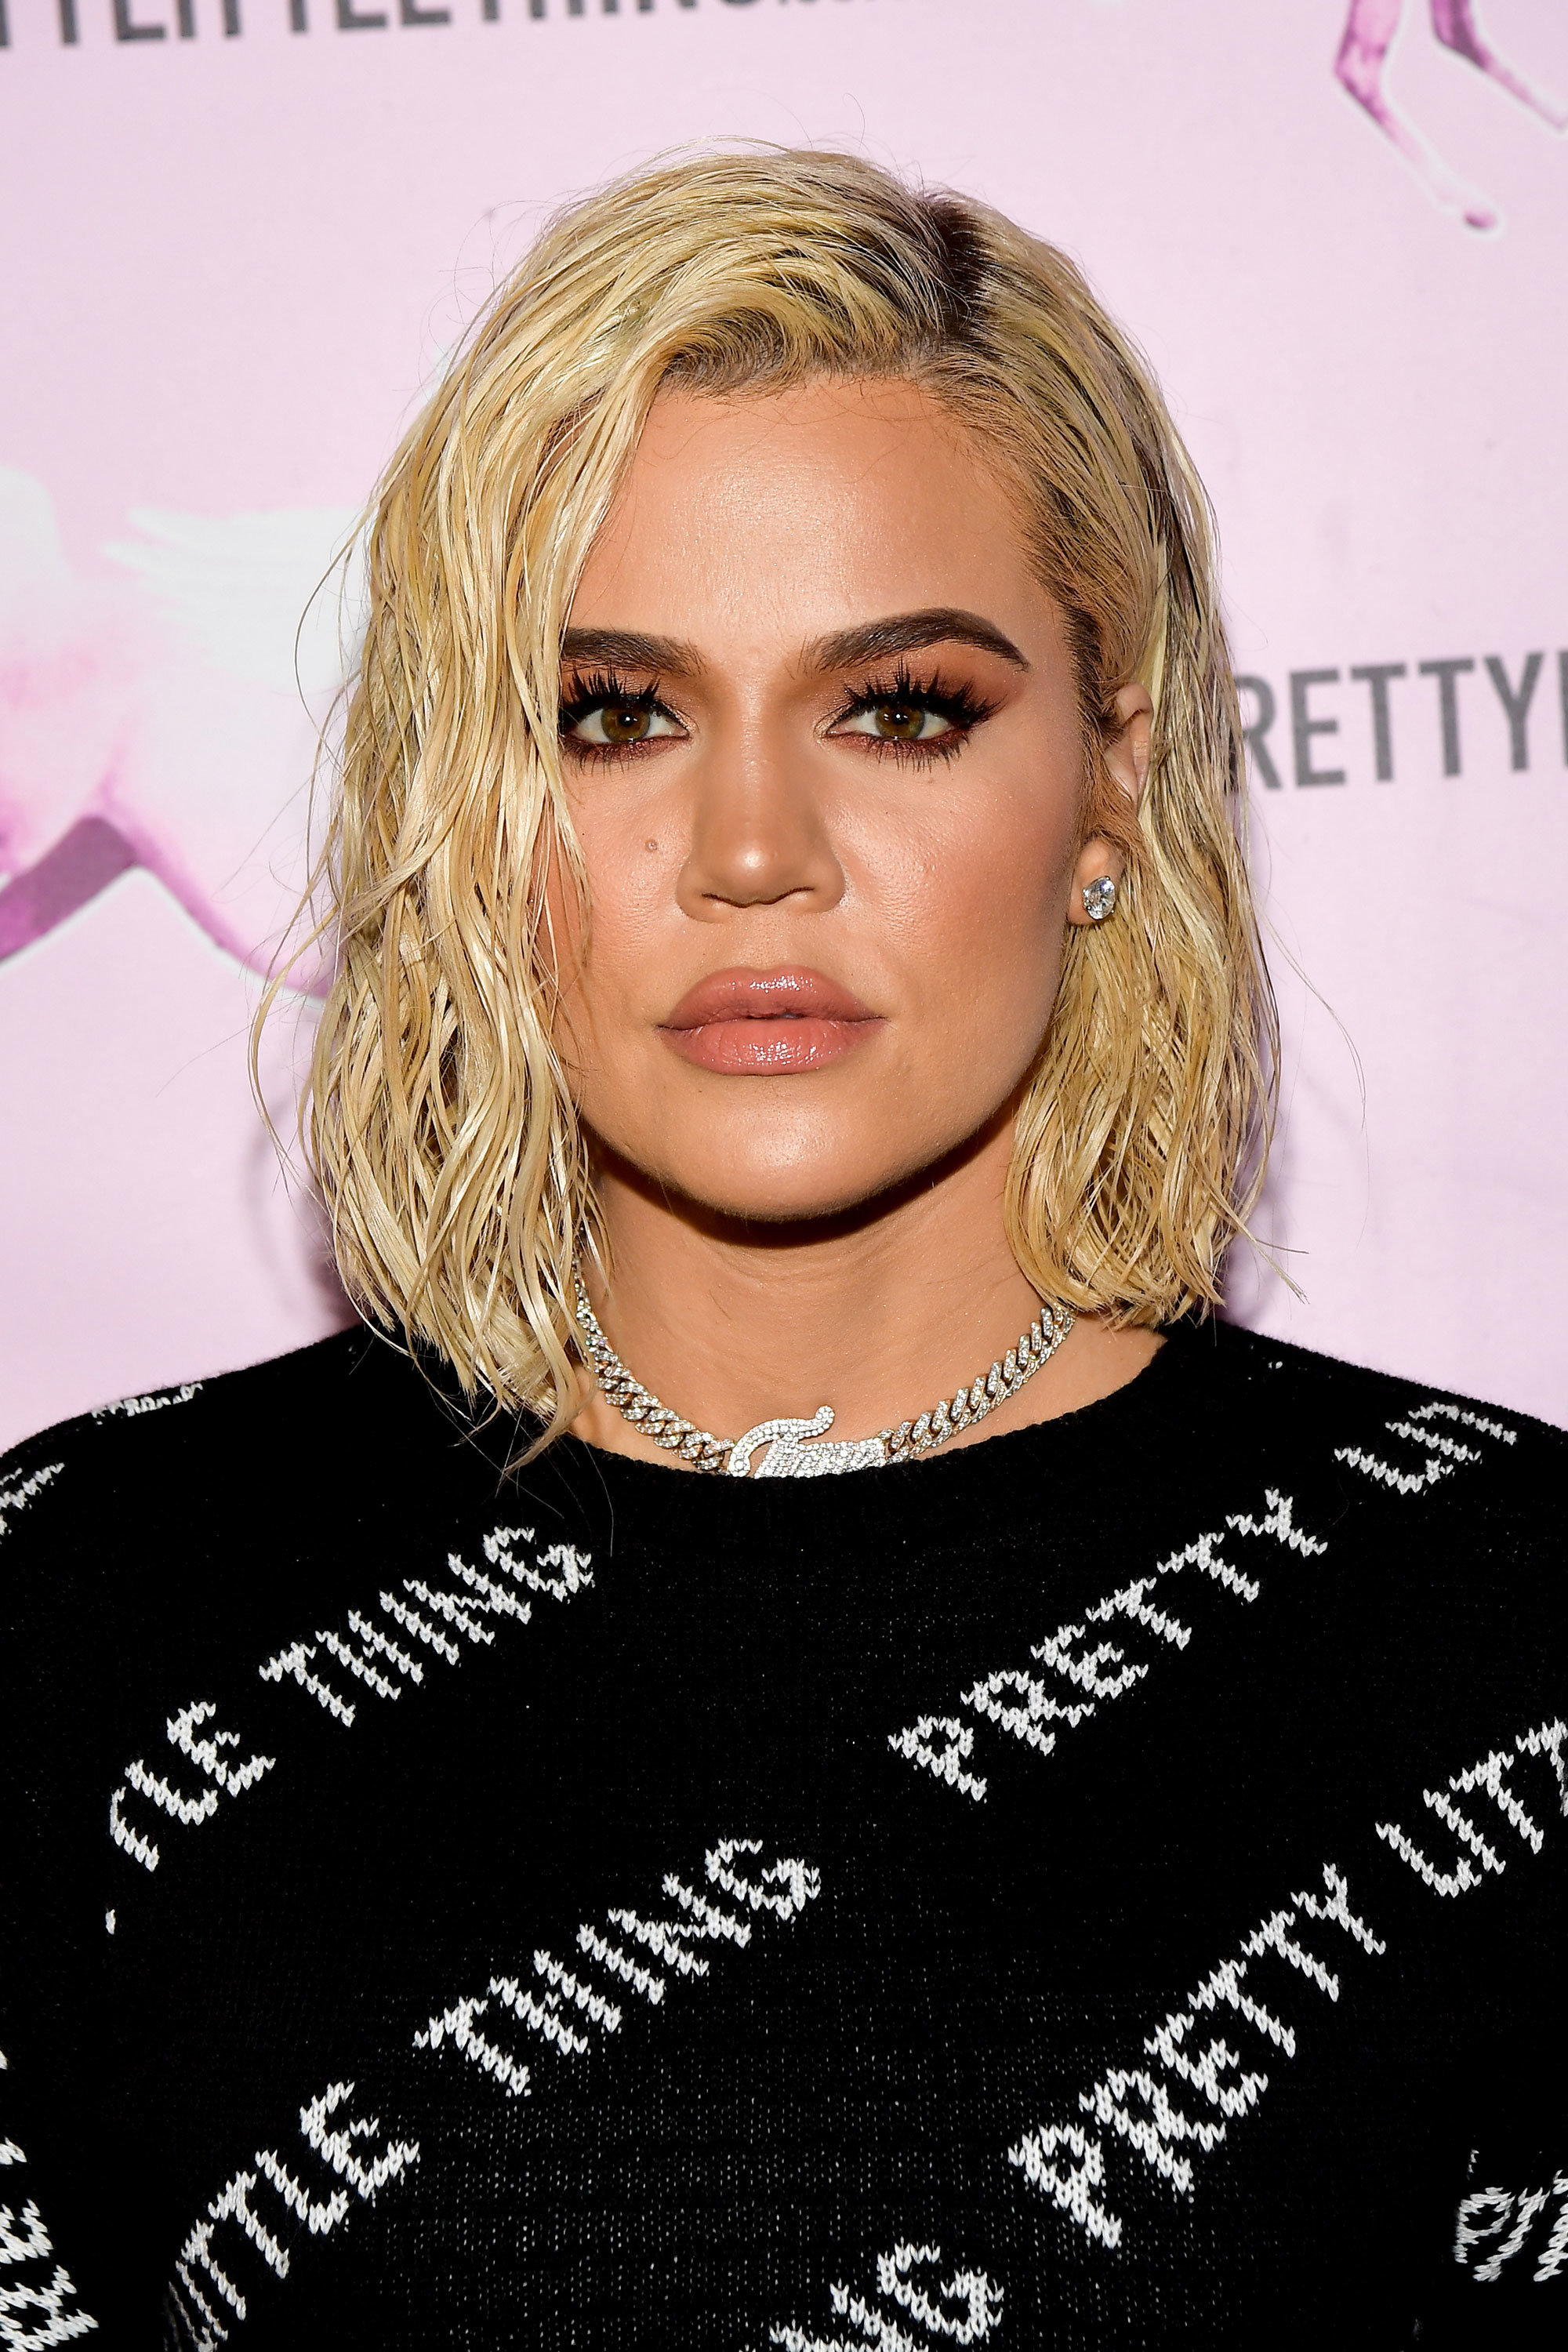 Khloé Kardashian's New Hair Color Is So Blonde It's Almost White @InStyle